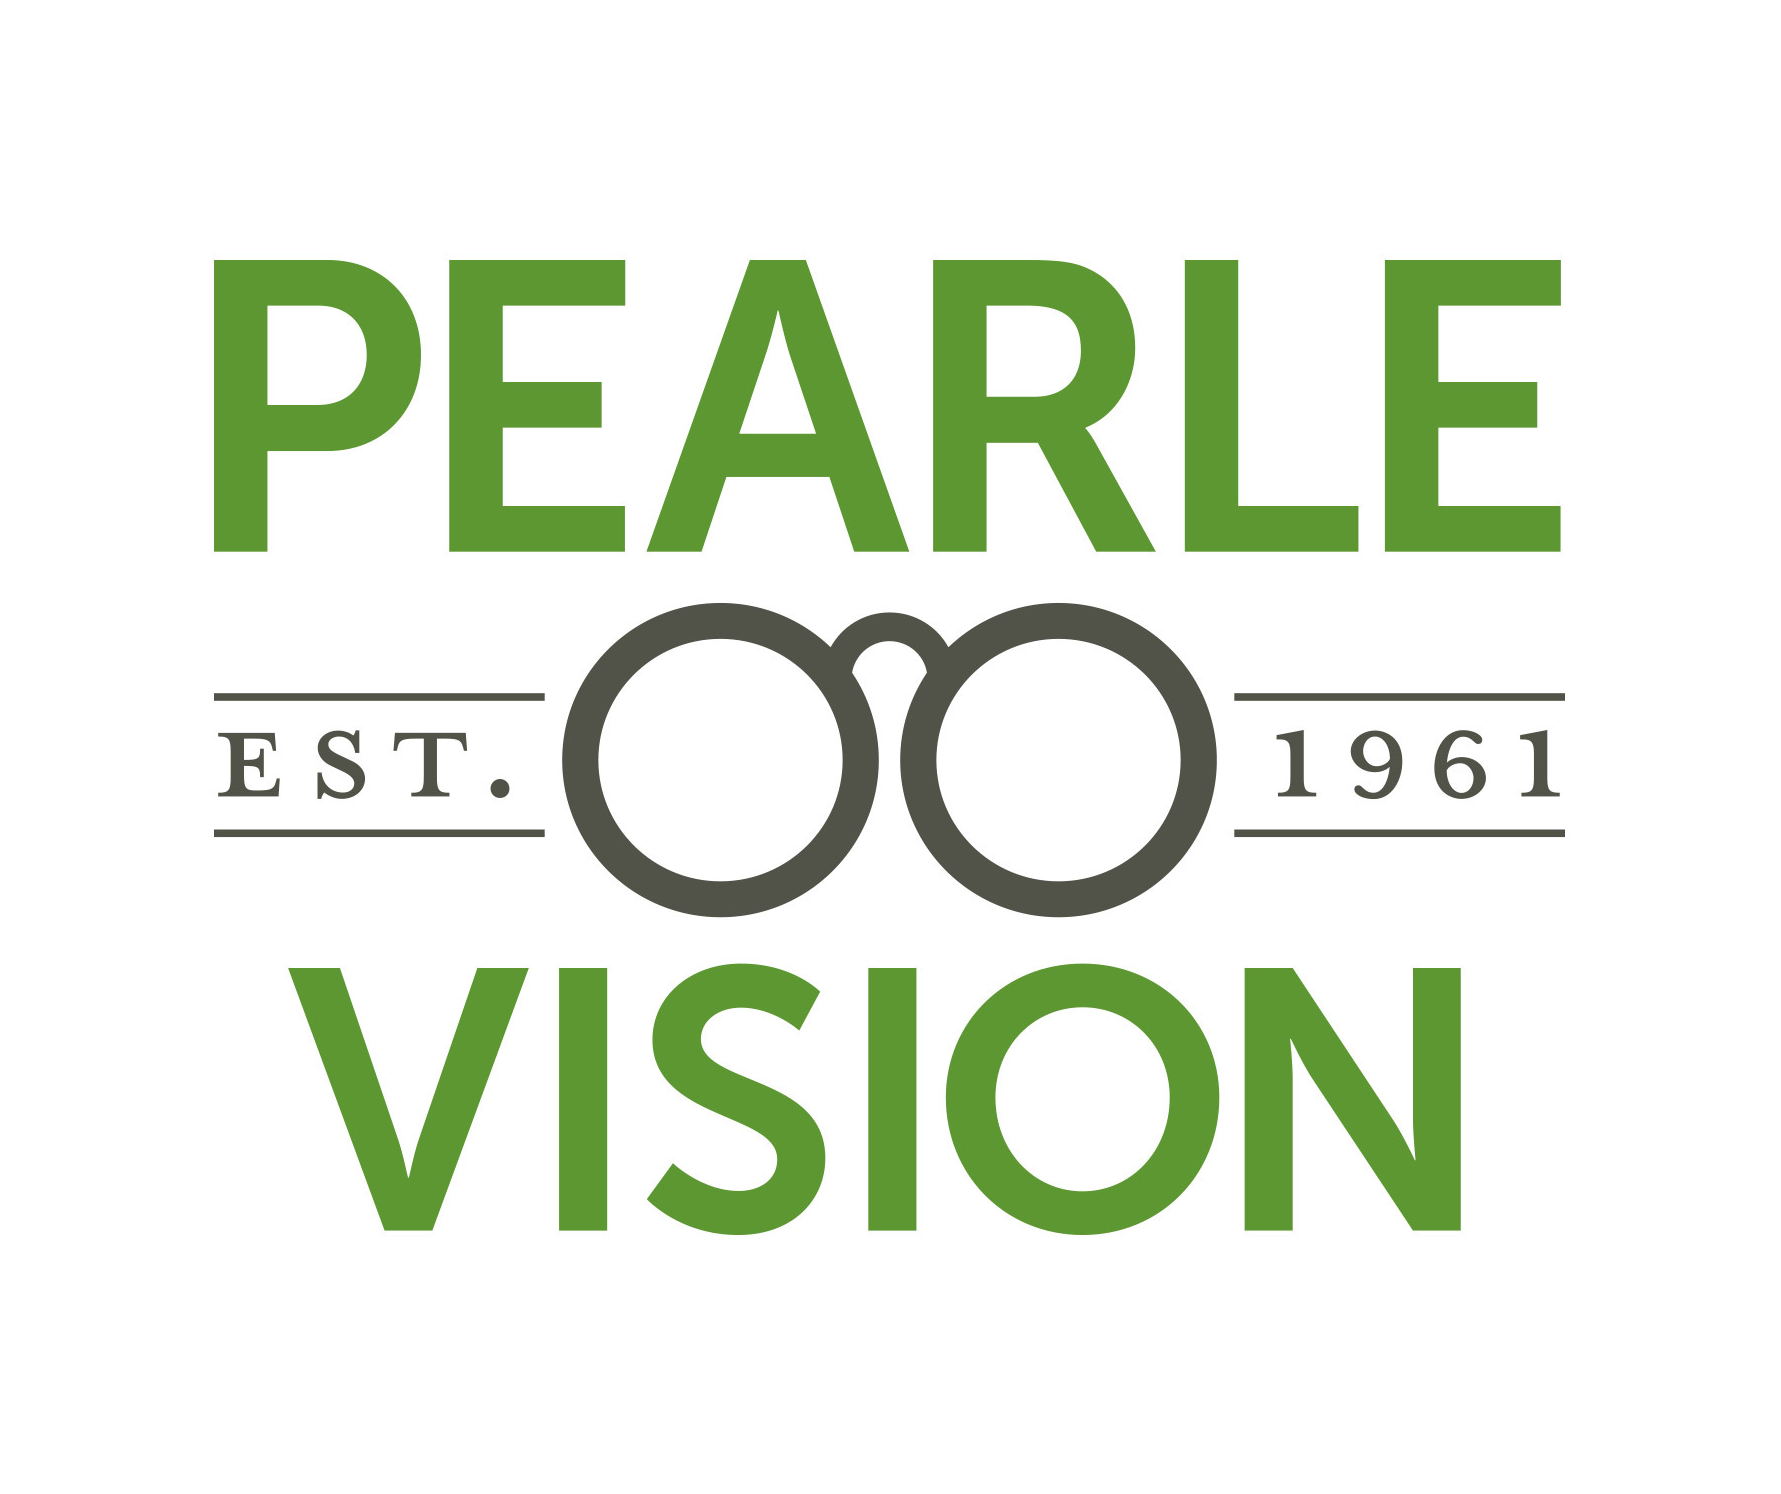 33d6c54a3af Pearle Vision Eye Care Center in Roswell